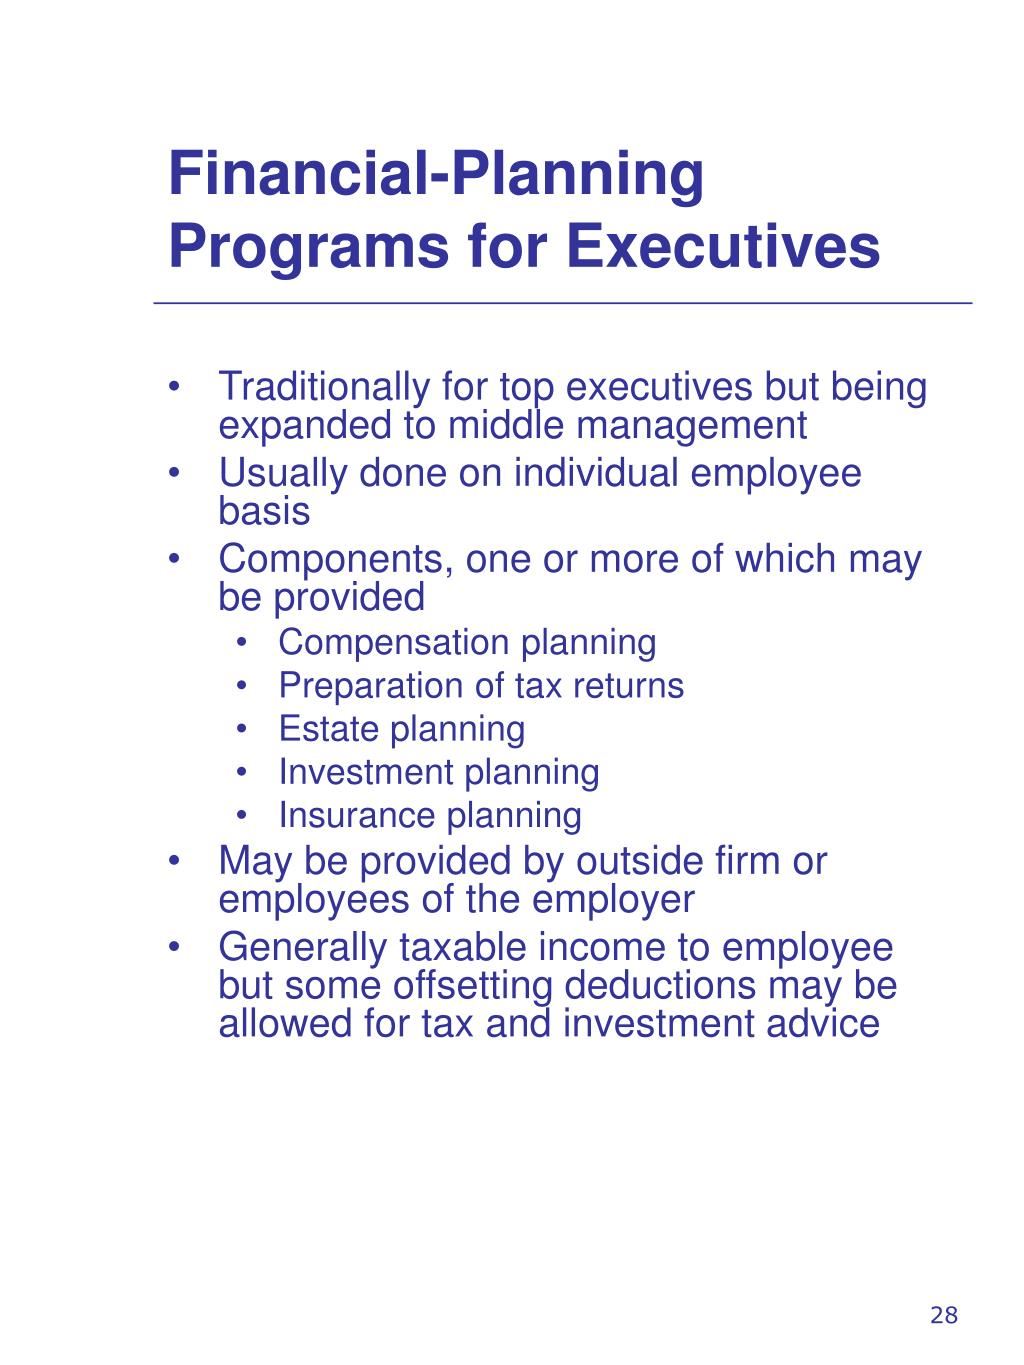 Financial-Planning Programs for Executives